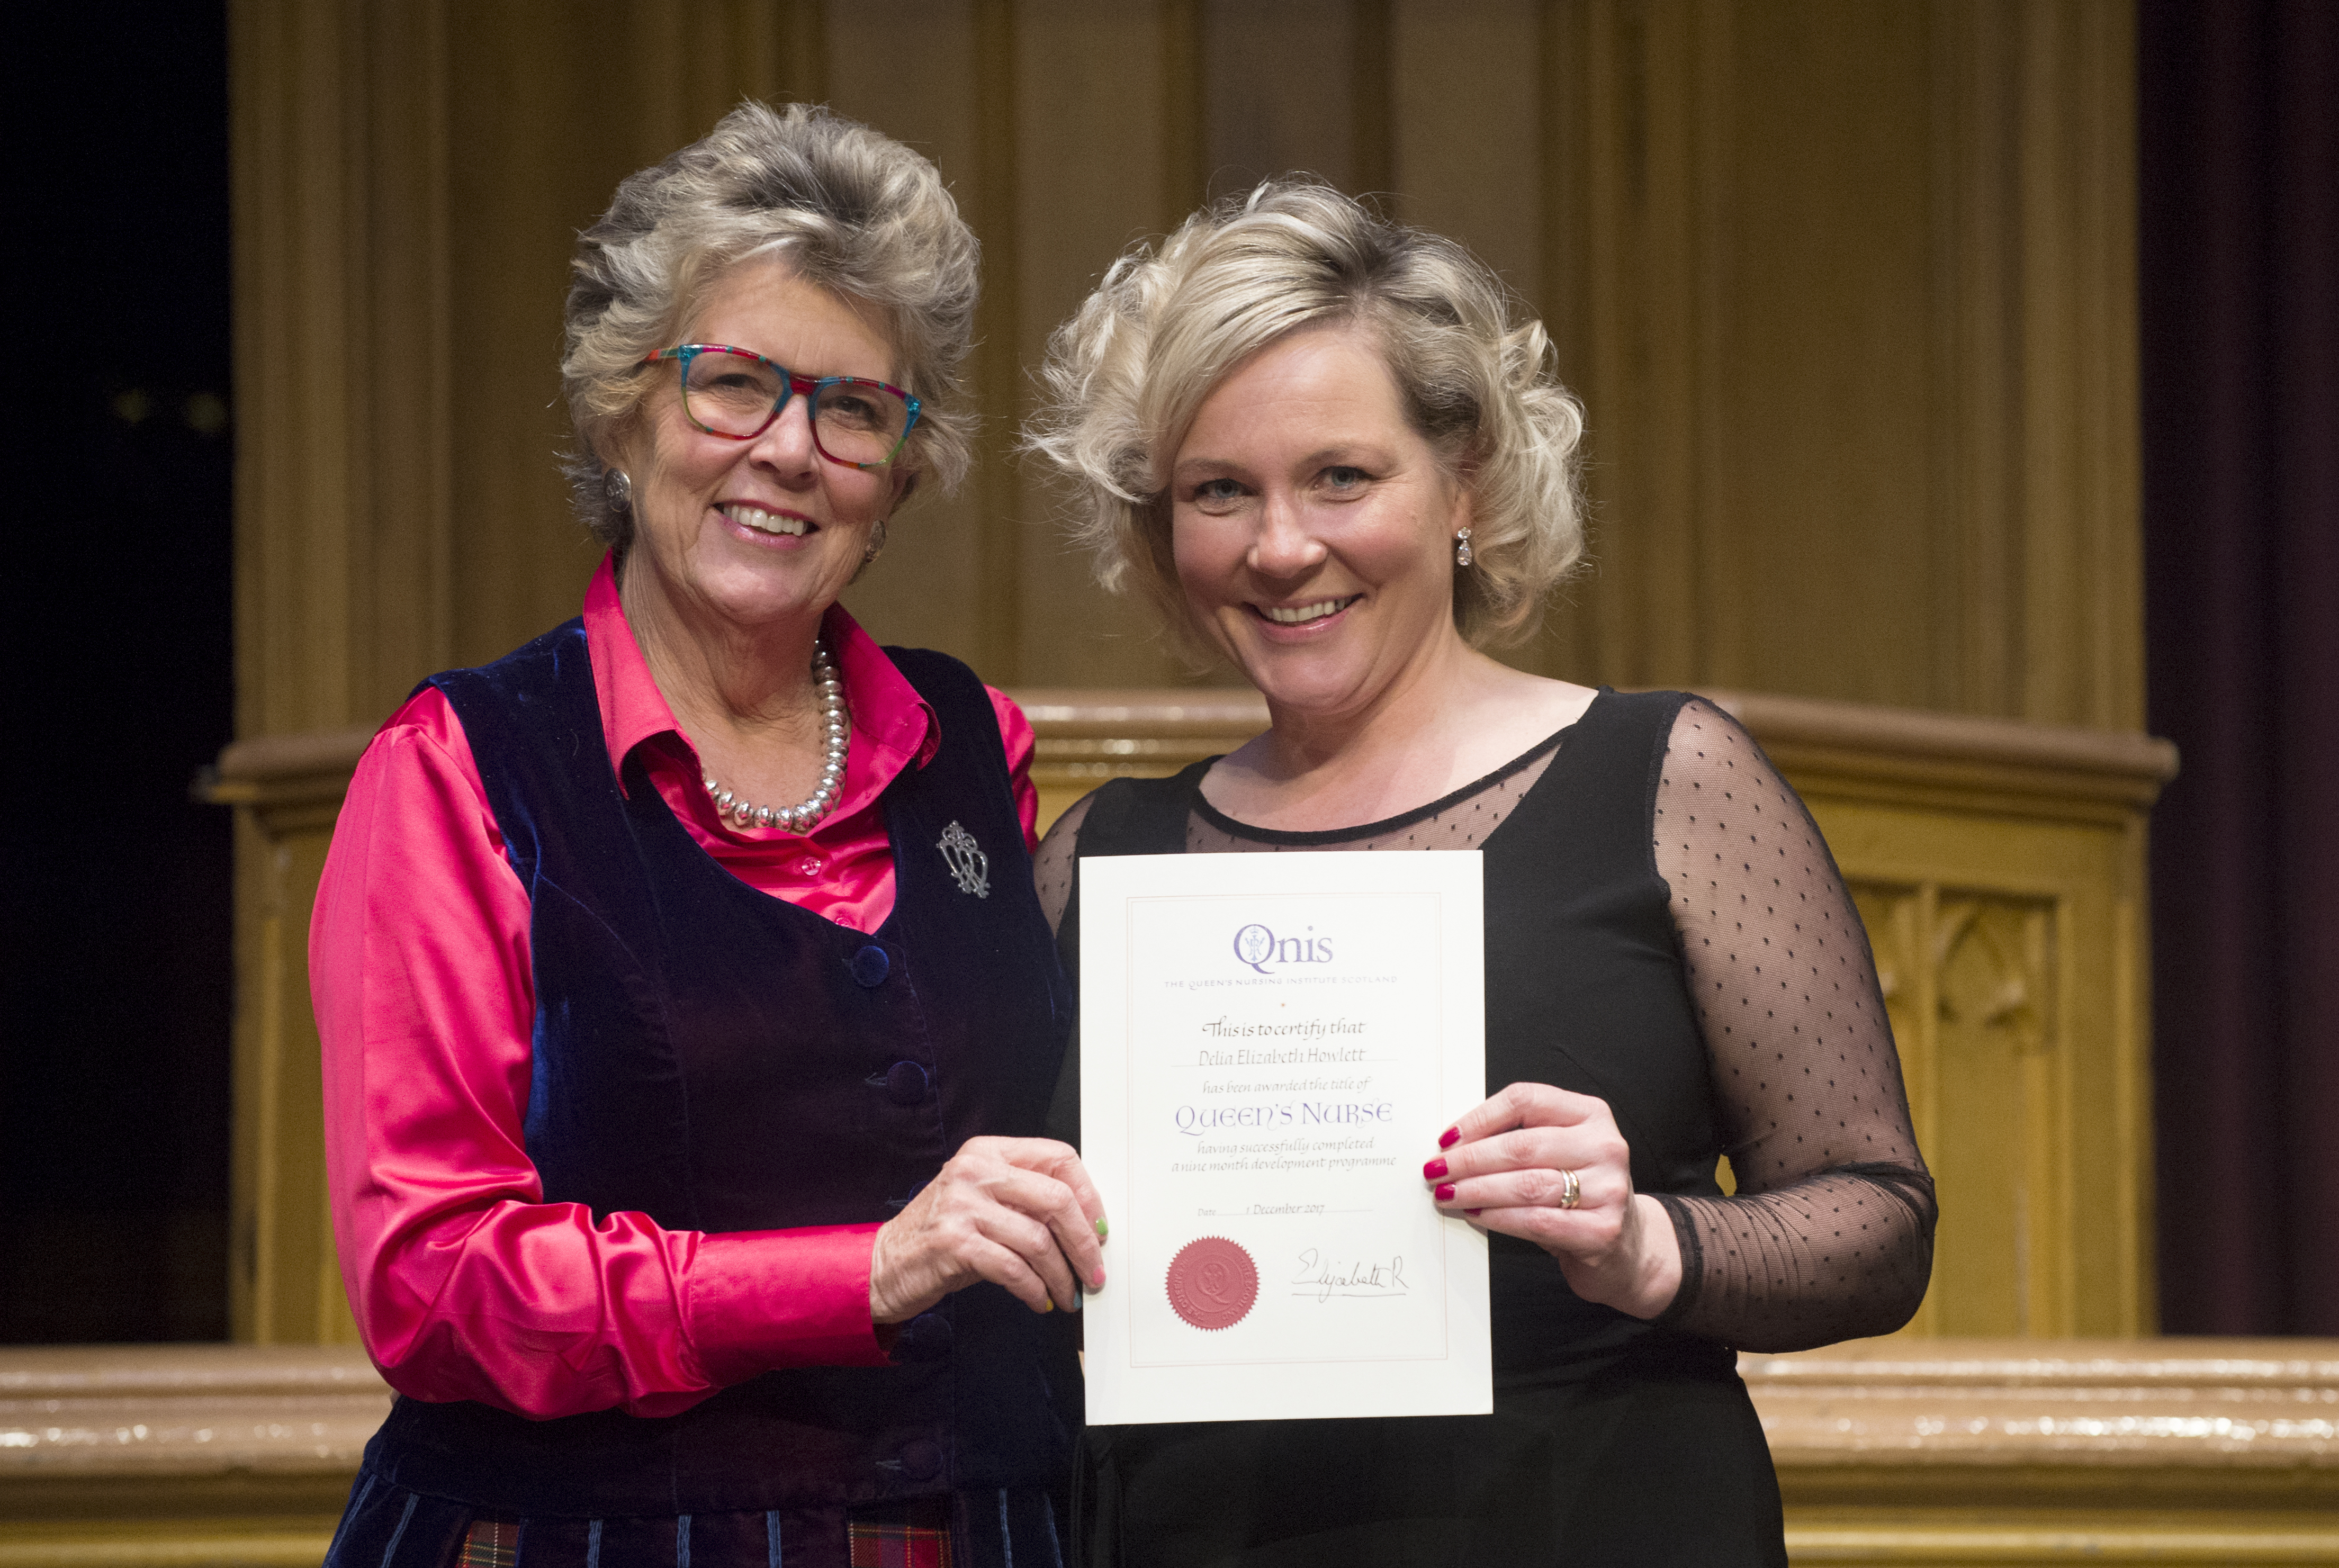 queens-nursing-institute-scotland-awards-2017-094.jpg